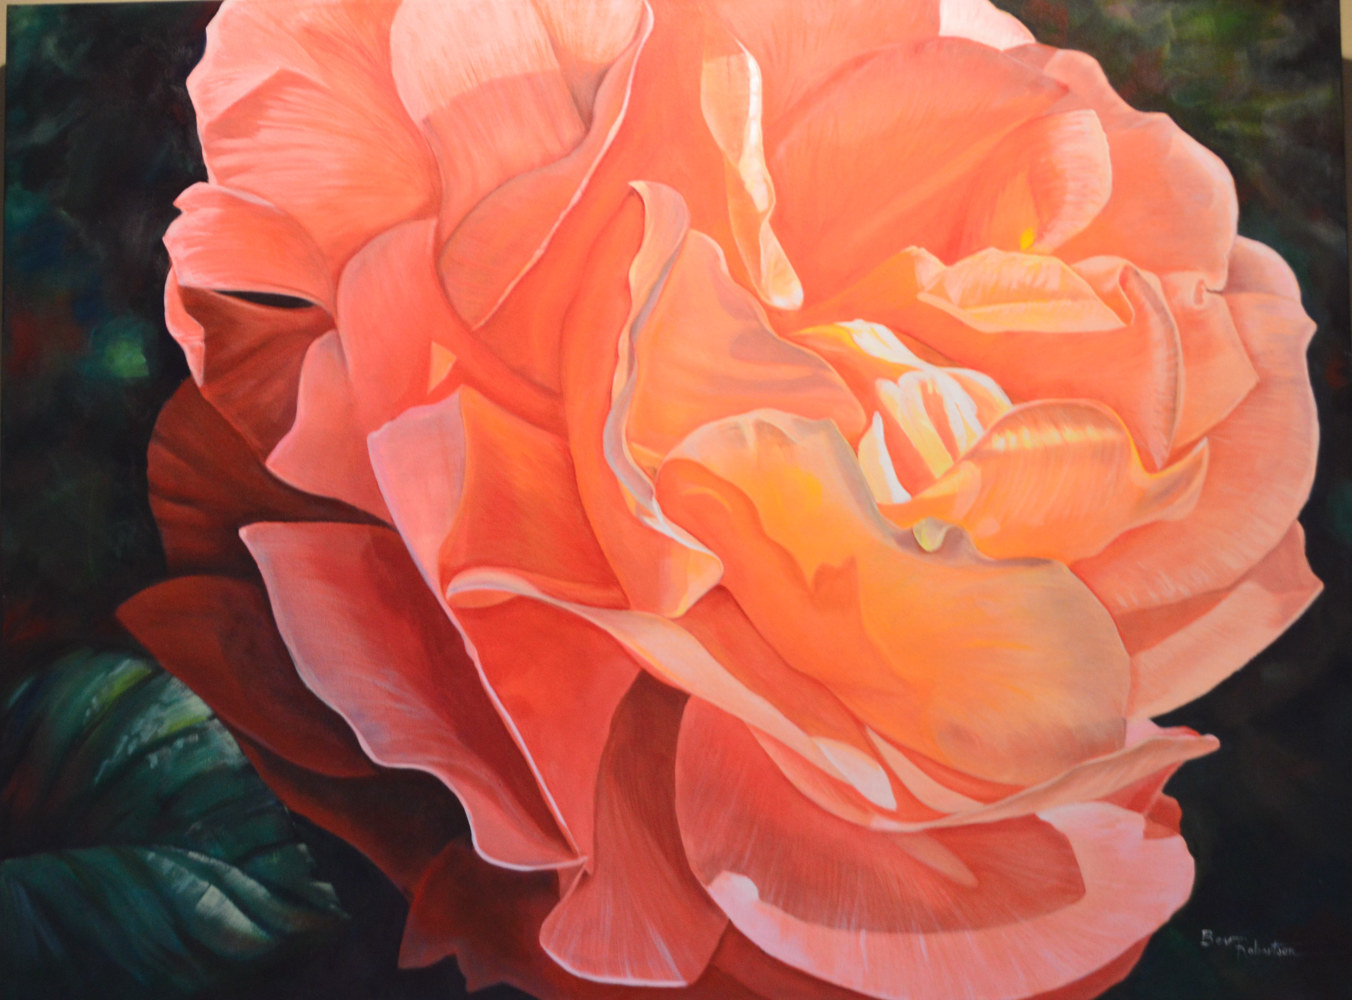 Acrylic painting Rose in the Park by Bev Robertson